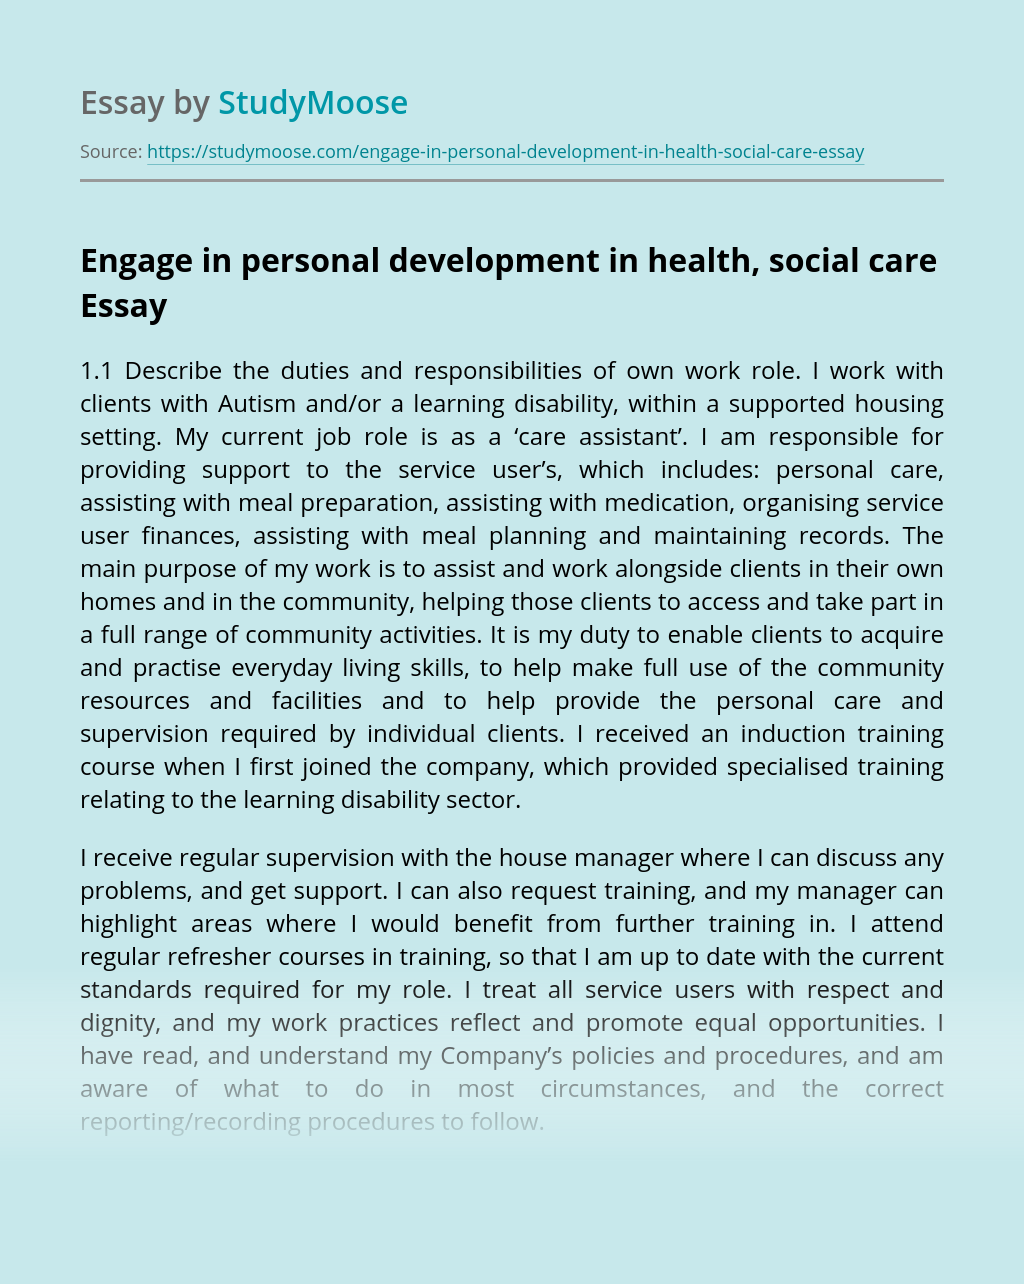 Engage in personal development in health, social care